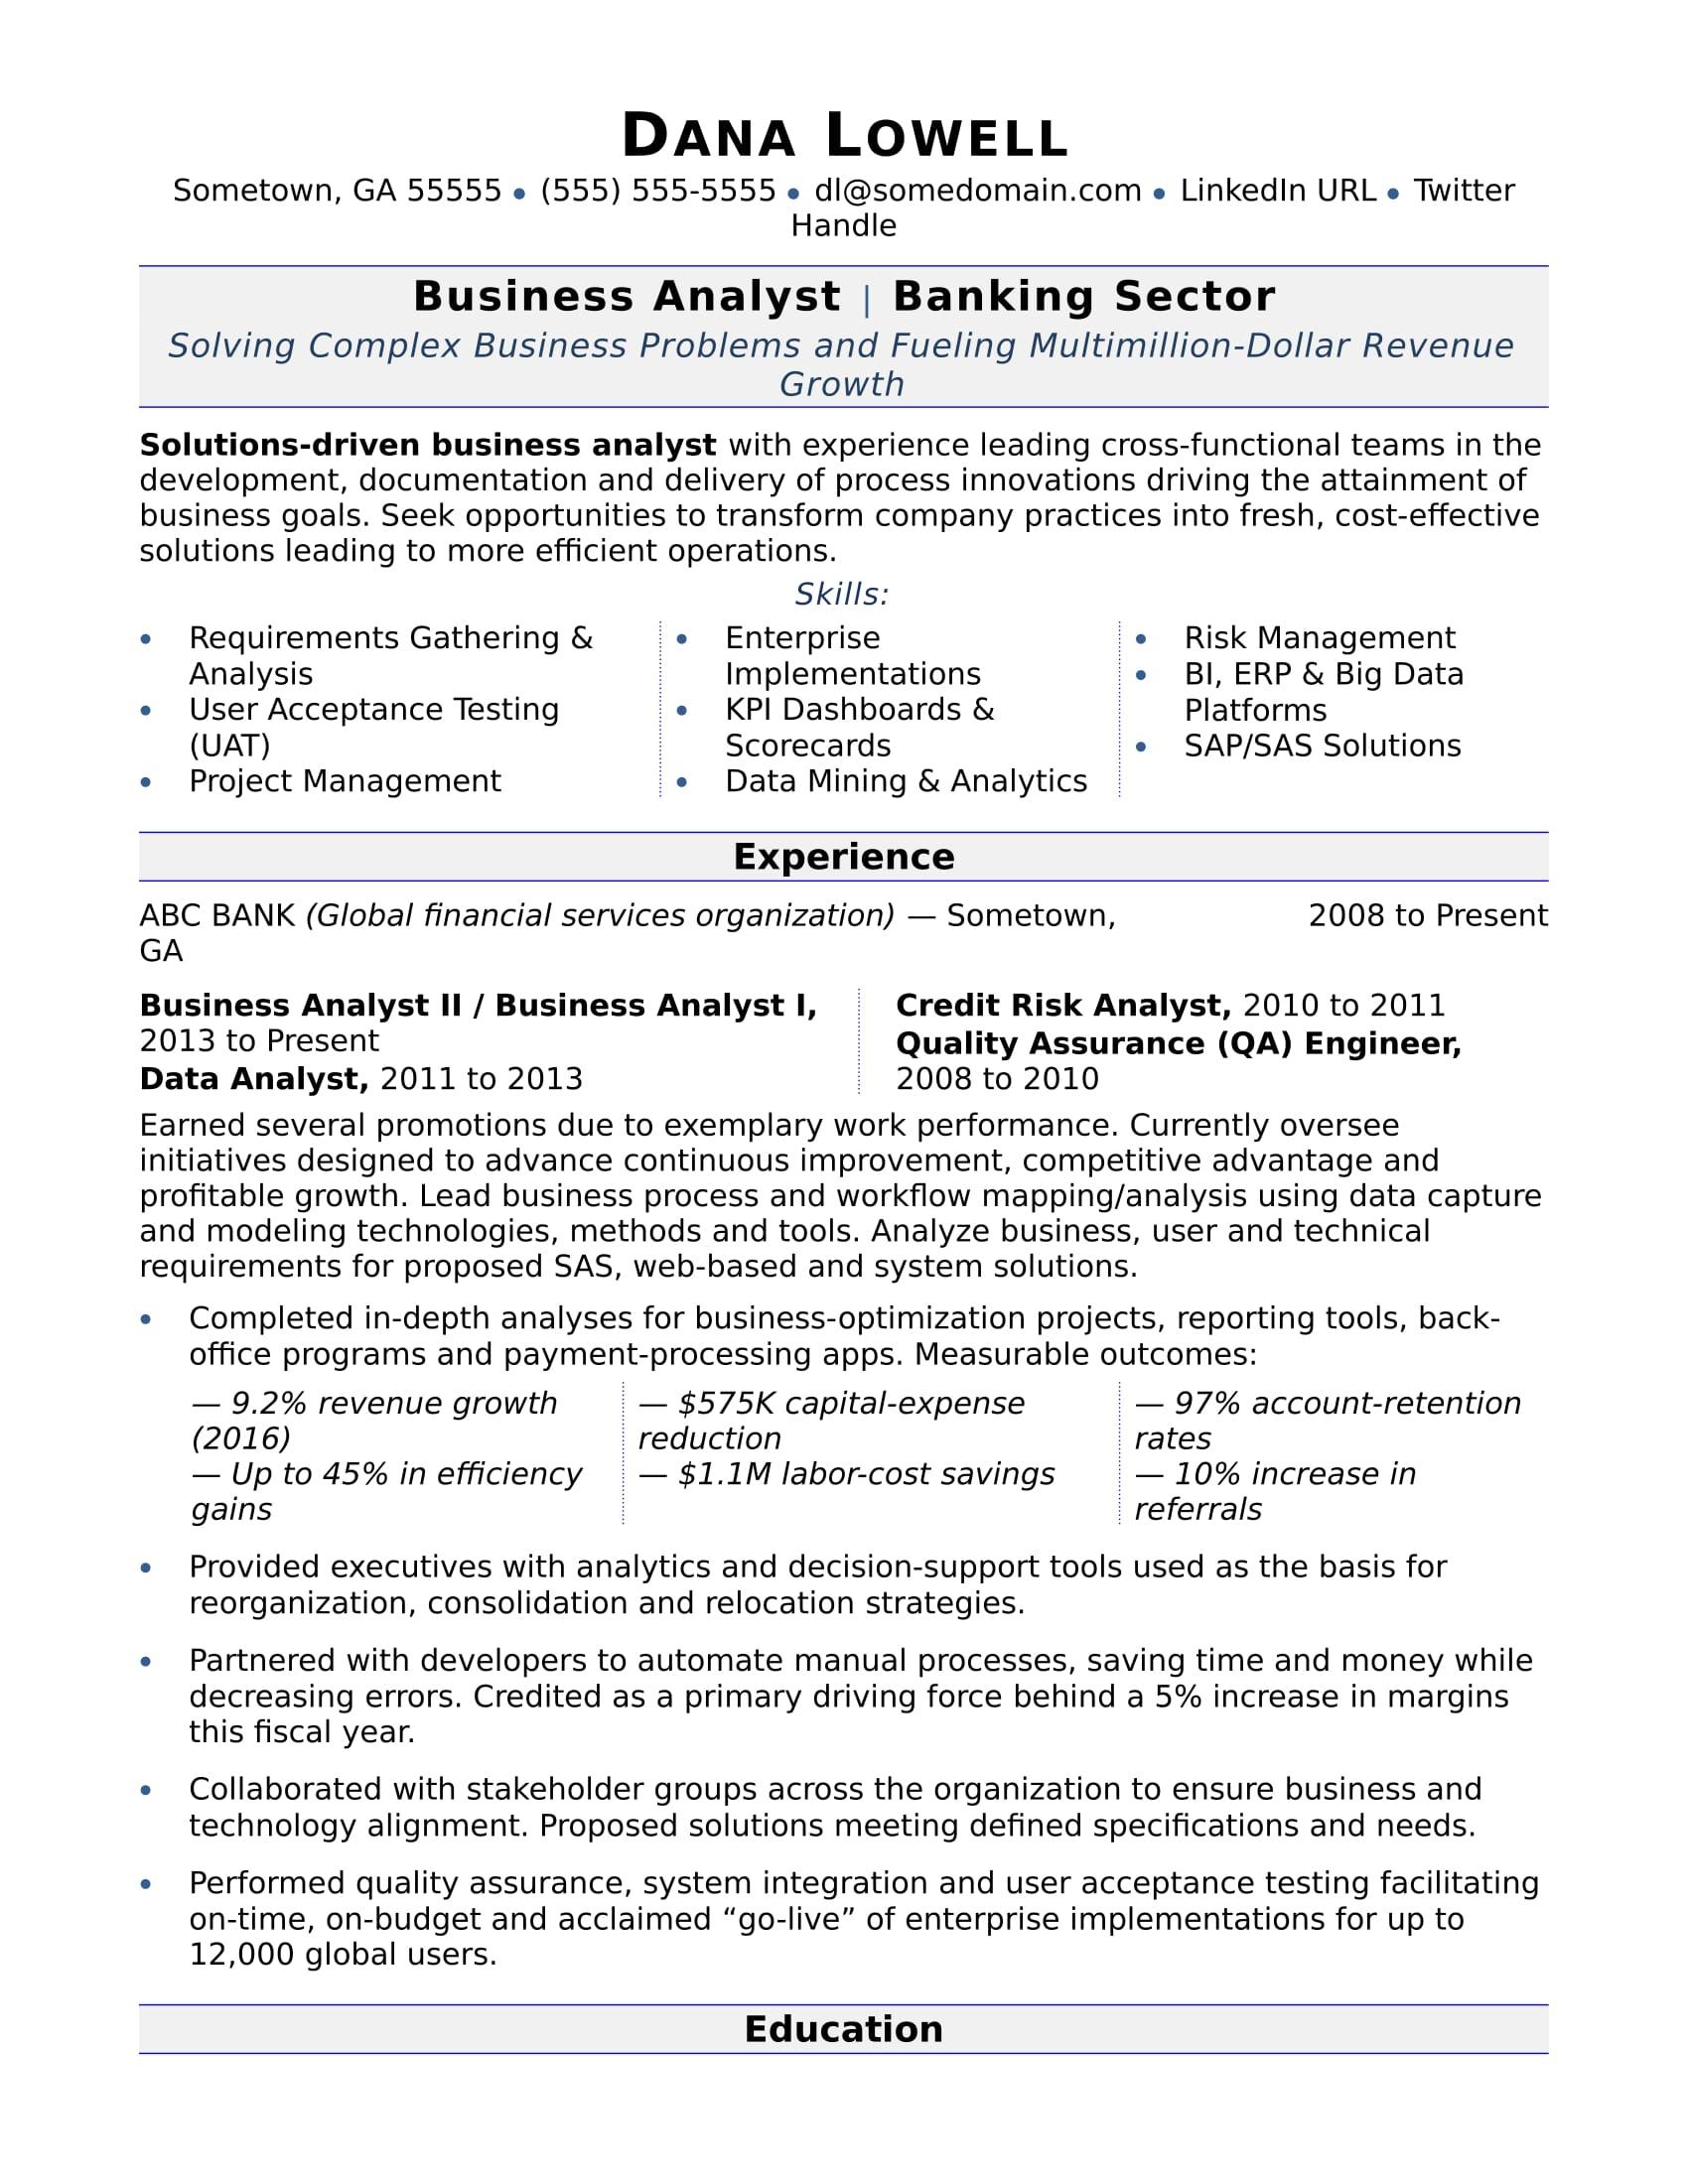 business analyst resume sample monster banking businessanalyst italian template channel Resume Sample Resume Business Analyst Banking